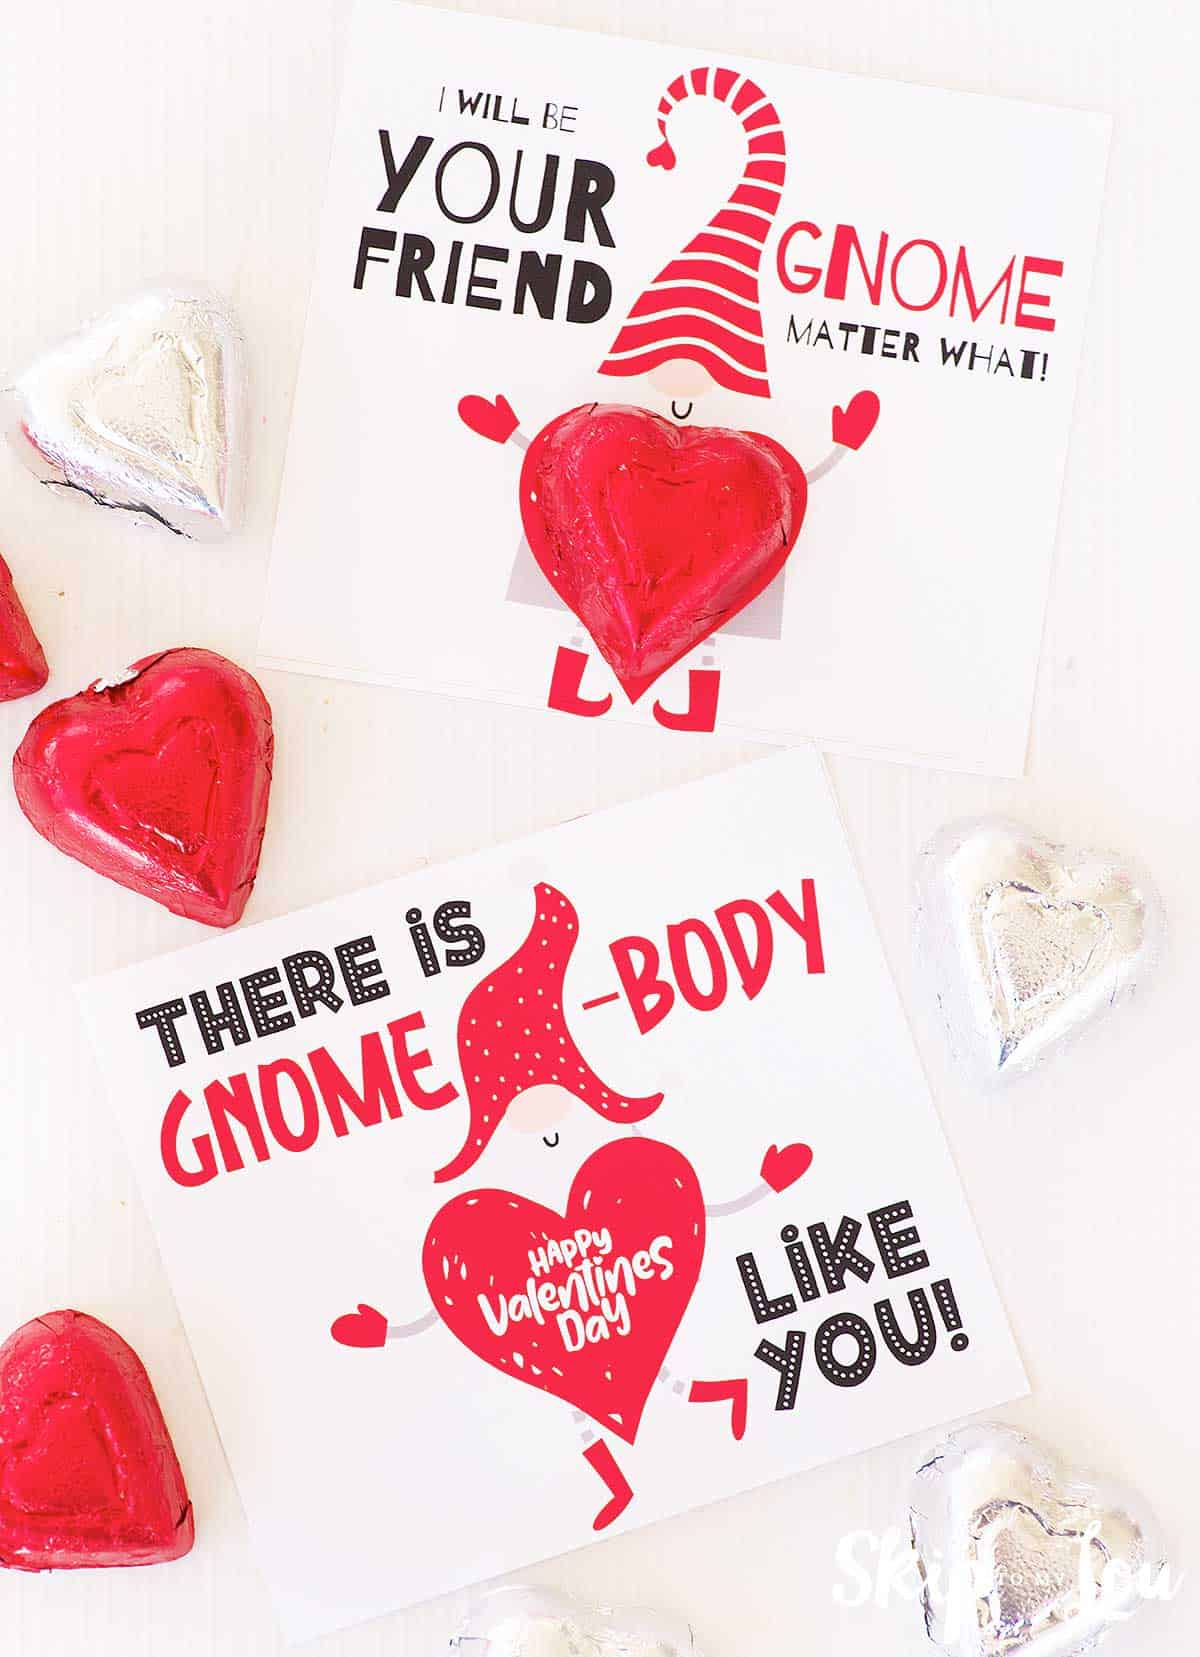 two gnome valentines without candy heart says happy valentine day